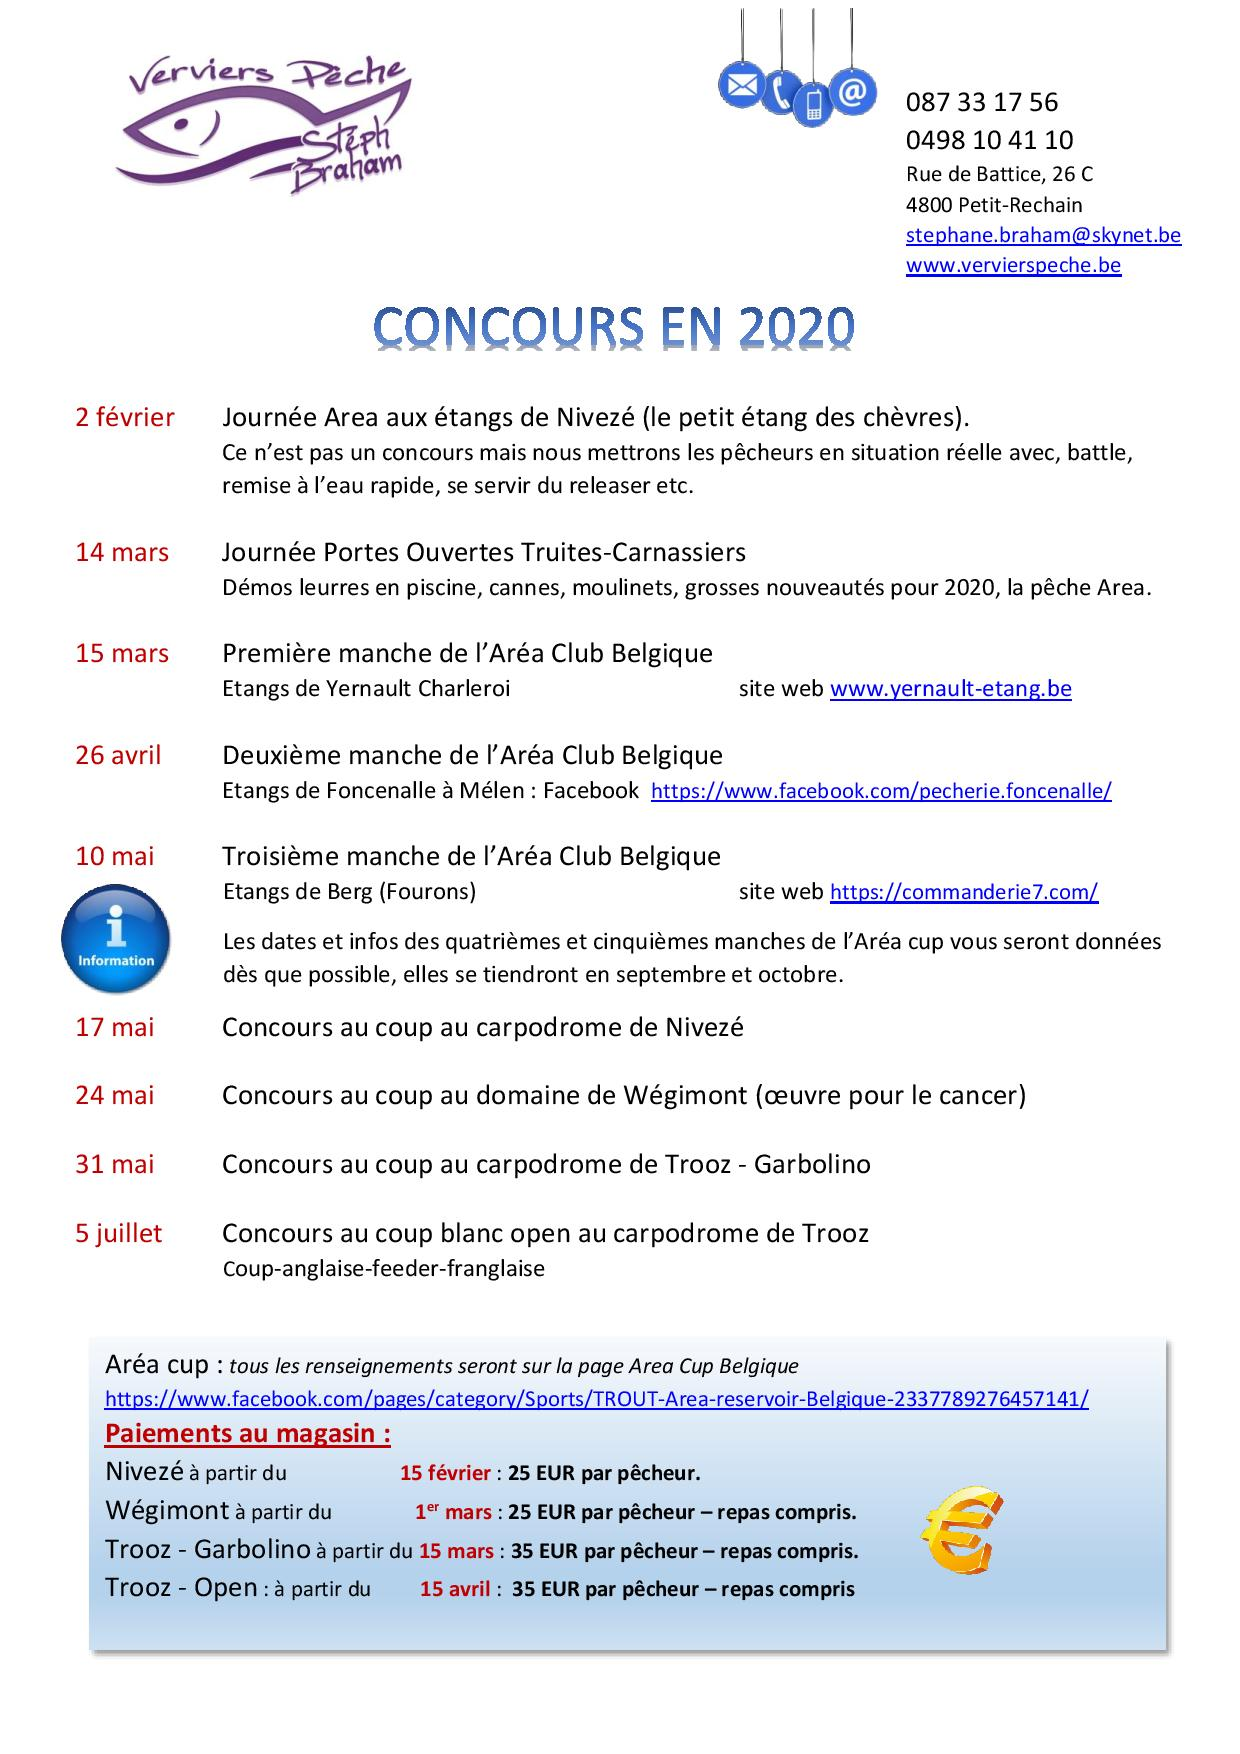 Concours 2020.jpg